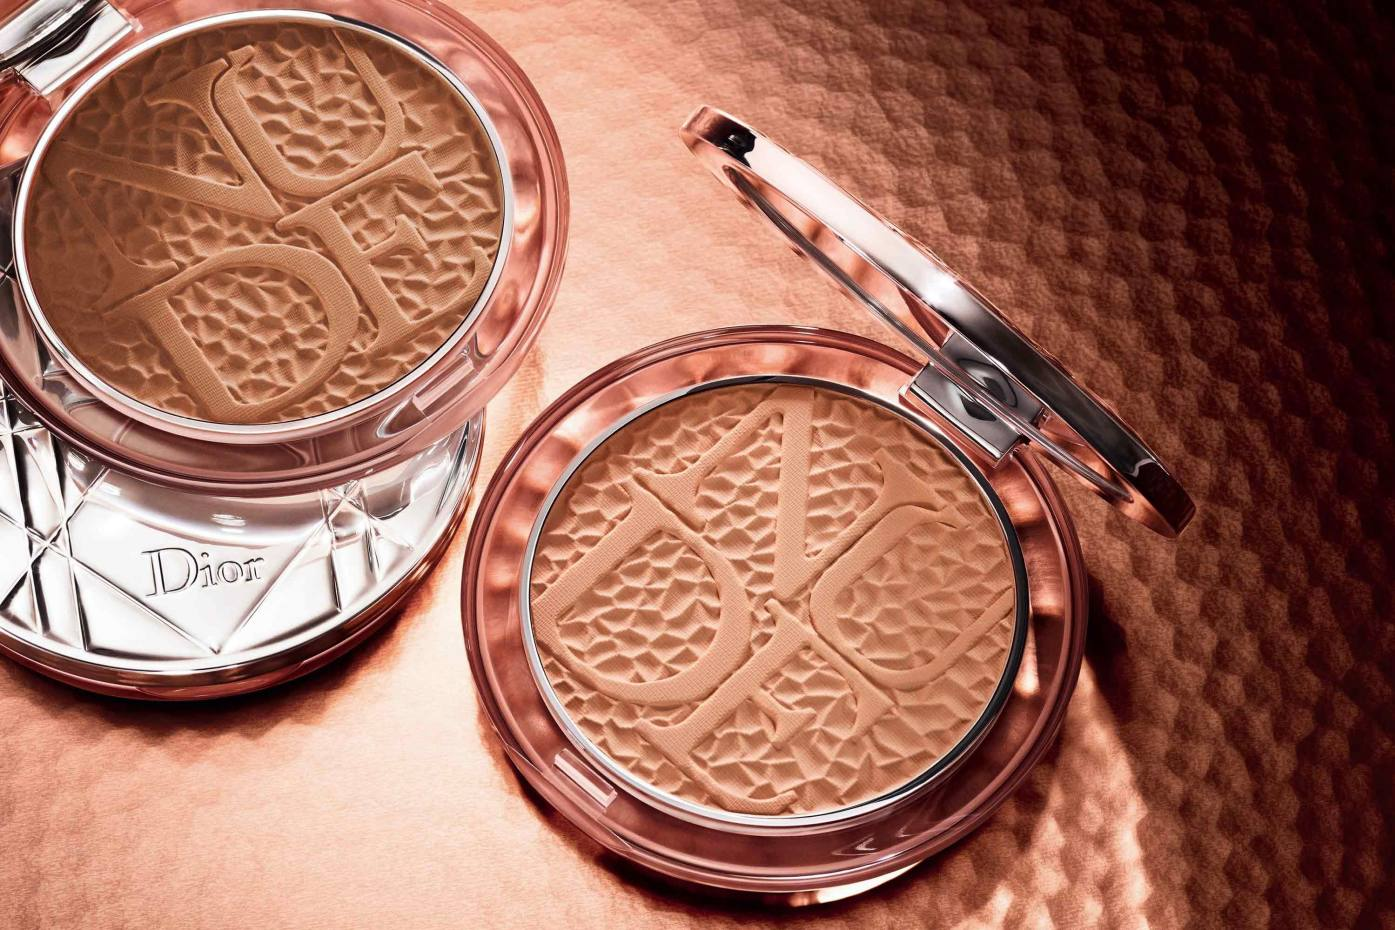 Diorskin Mineral Nude Bronze Wild Earth, £37, in Warm Terra (left) and Soft Terra (right)